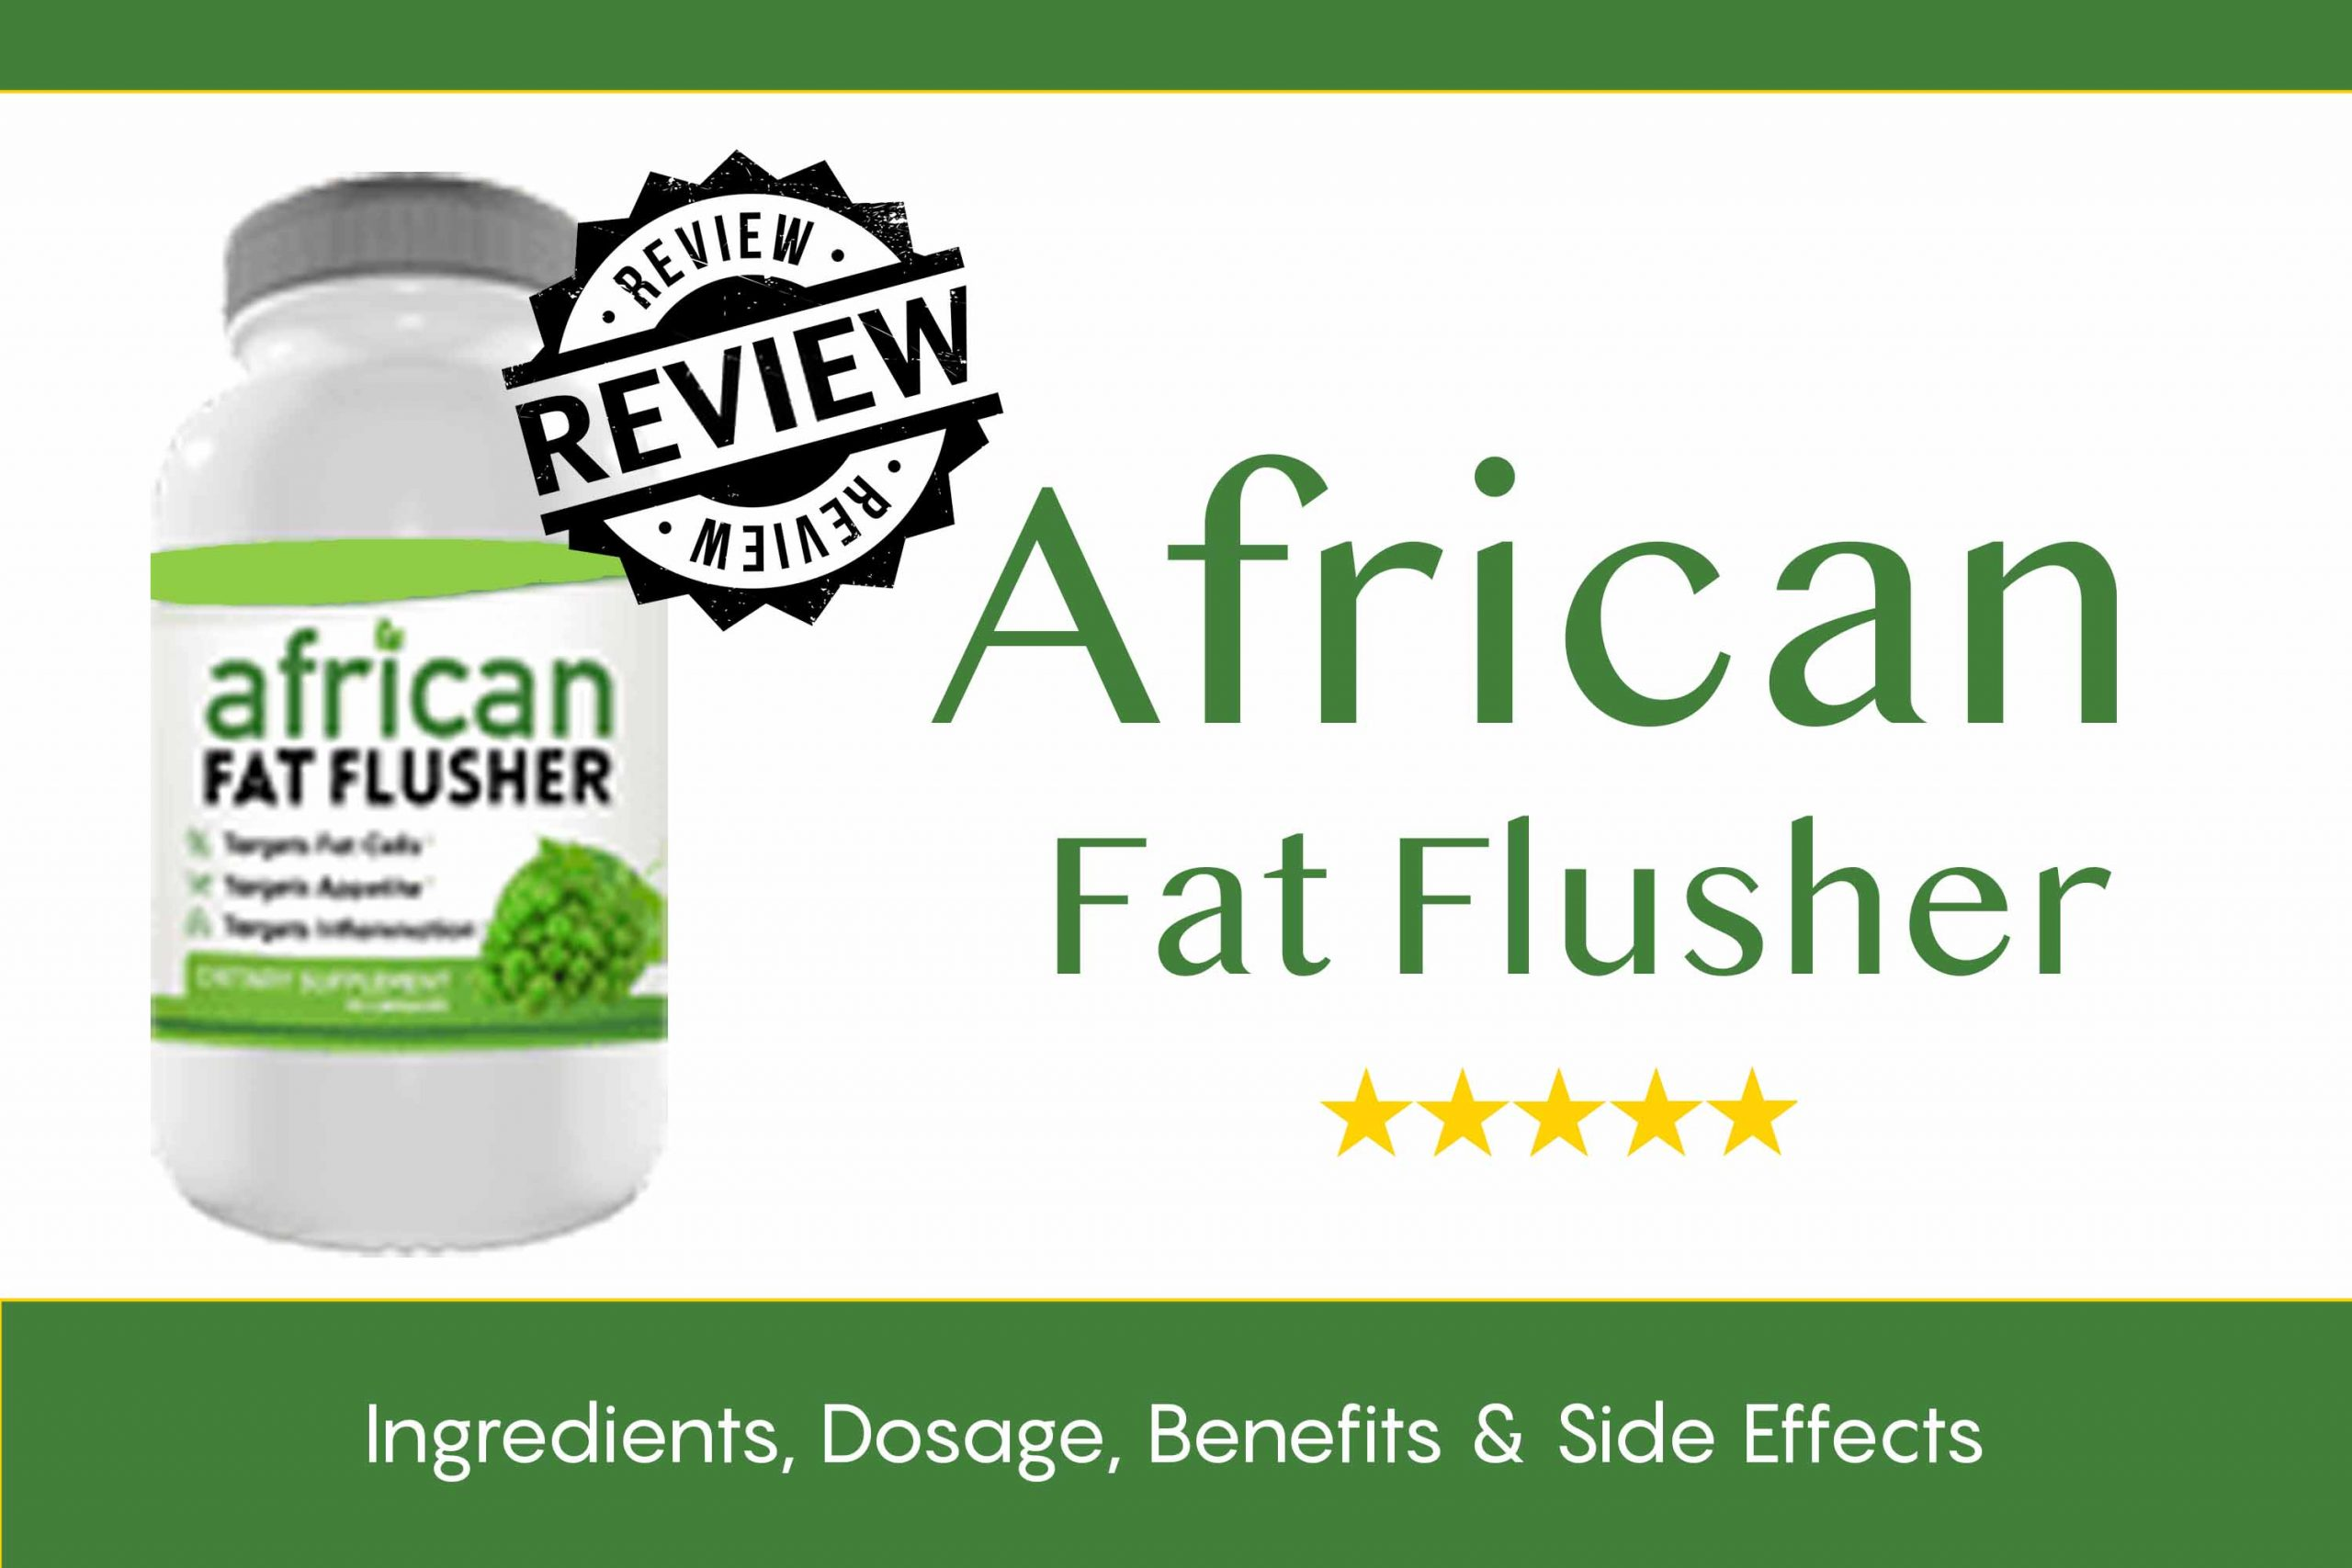 How to lose weight fast and effective with the African Fat Flusher Diet